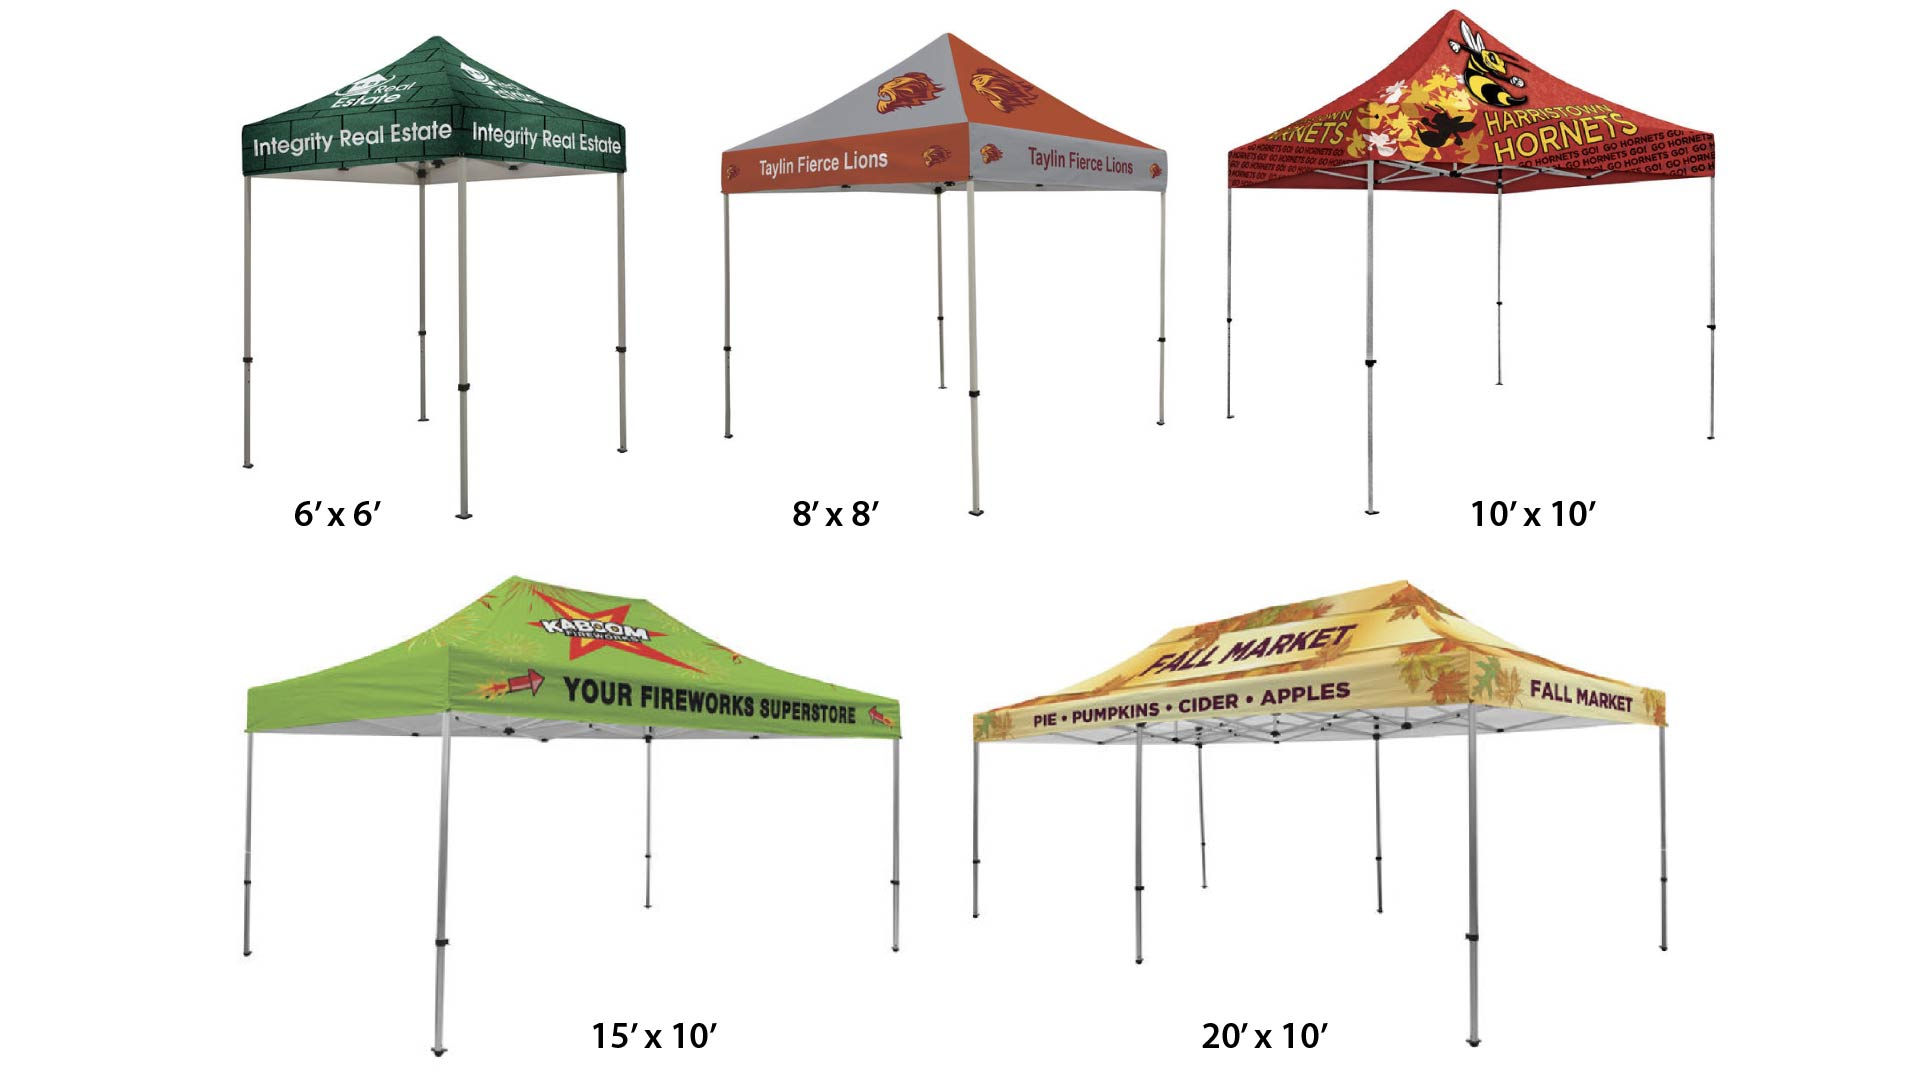 custom-printed-tent-sizes  sc 1 st  Expo Branders & Expo Branders | Trade Show Displays | Promotional Products - How ...